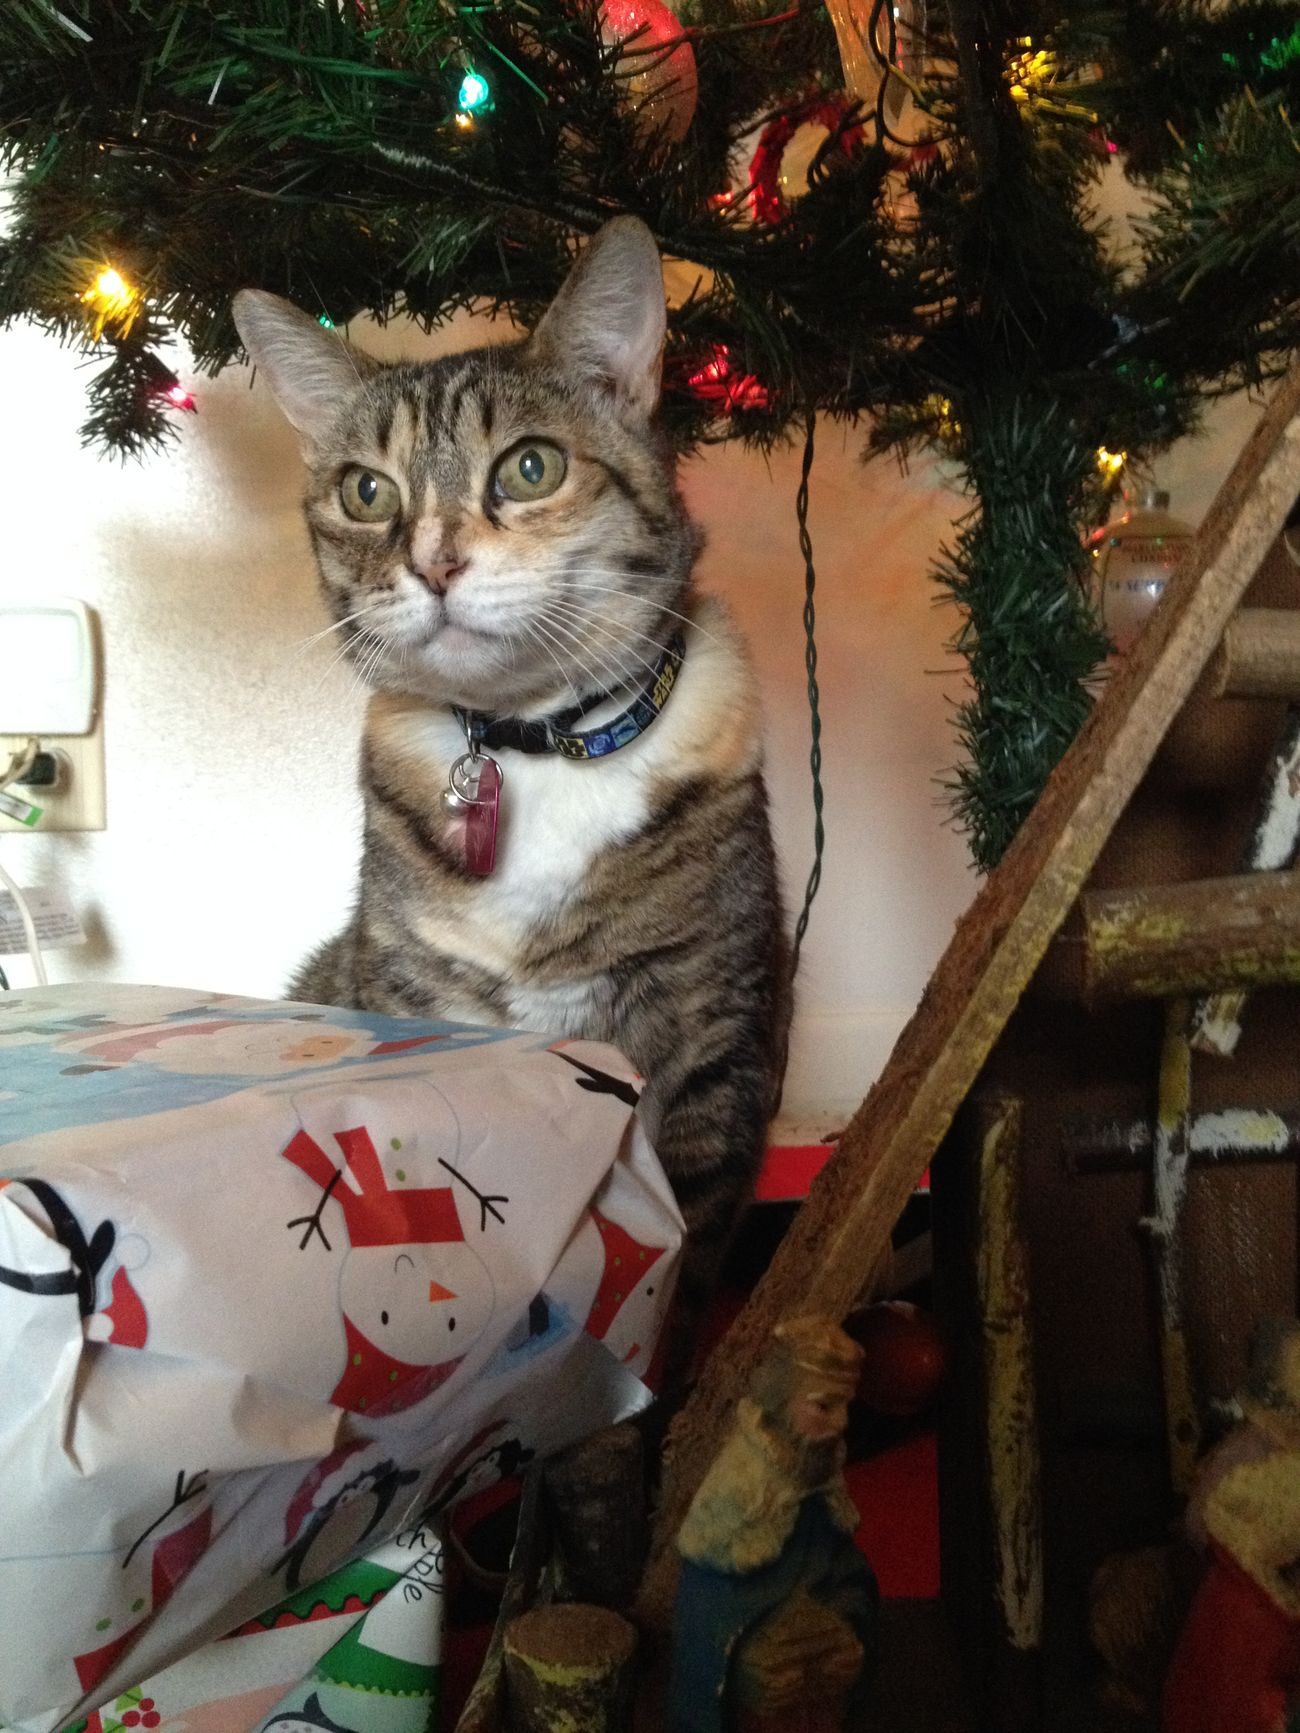 Mew the cat among the gifts Cat Lovers cat